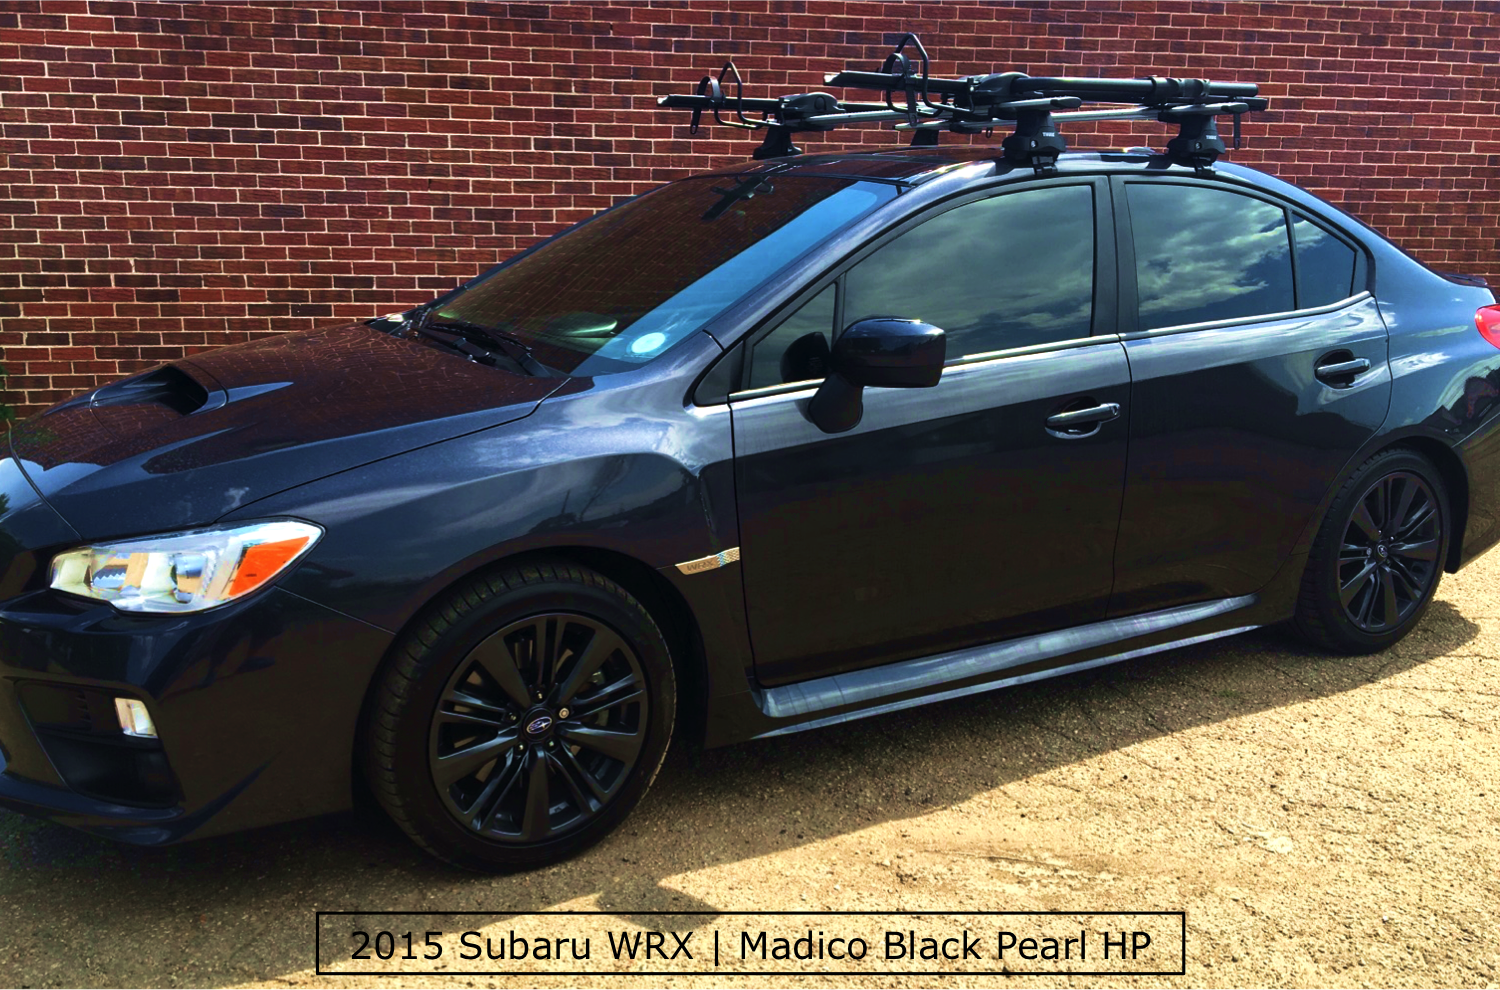 A Beautiful Subaru WRX with Window Tinting